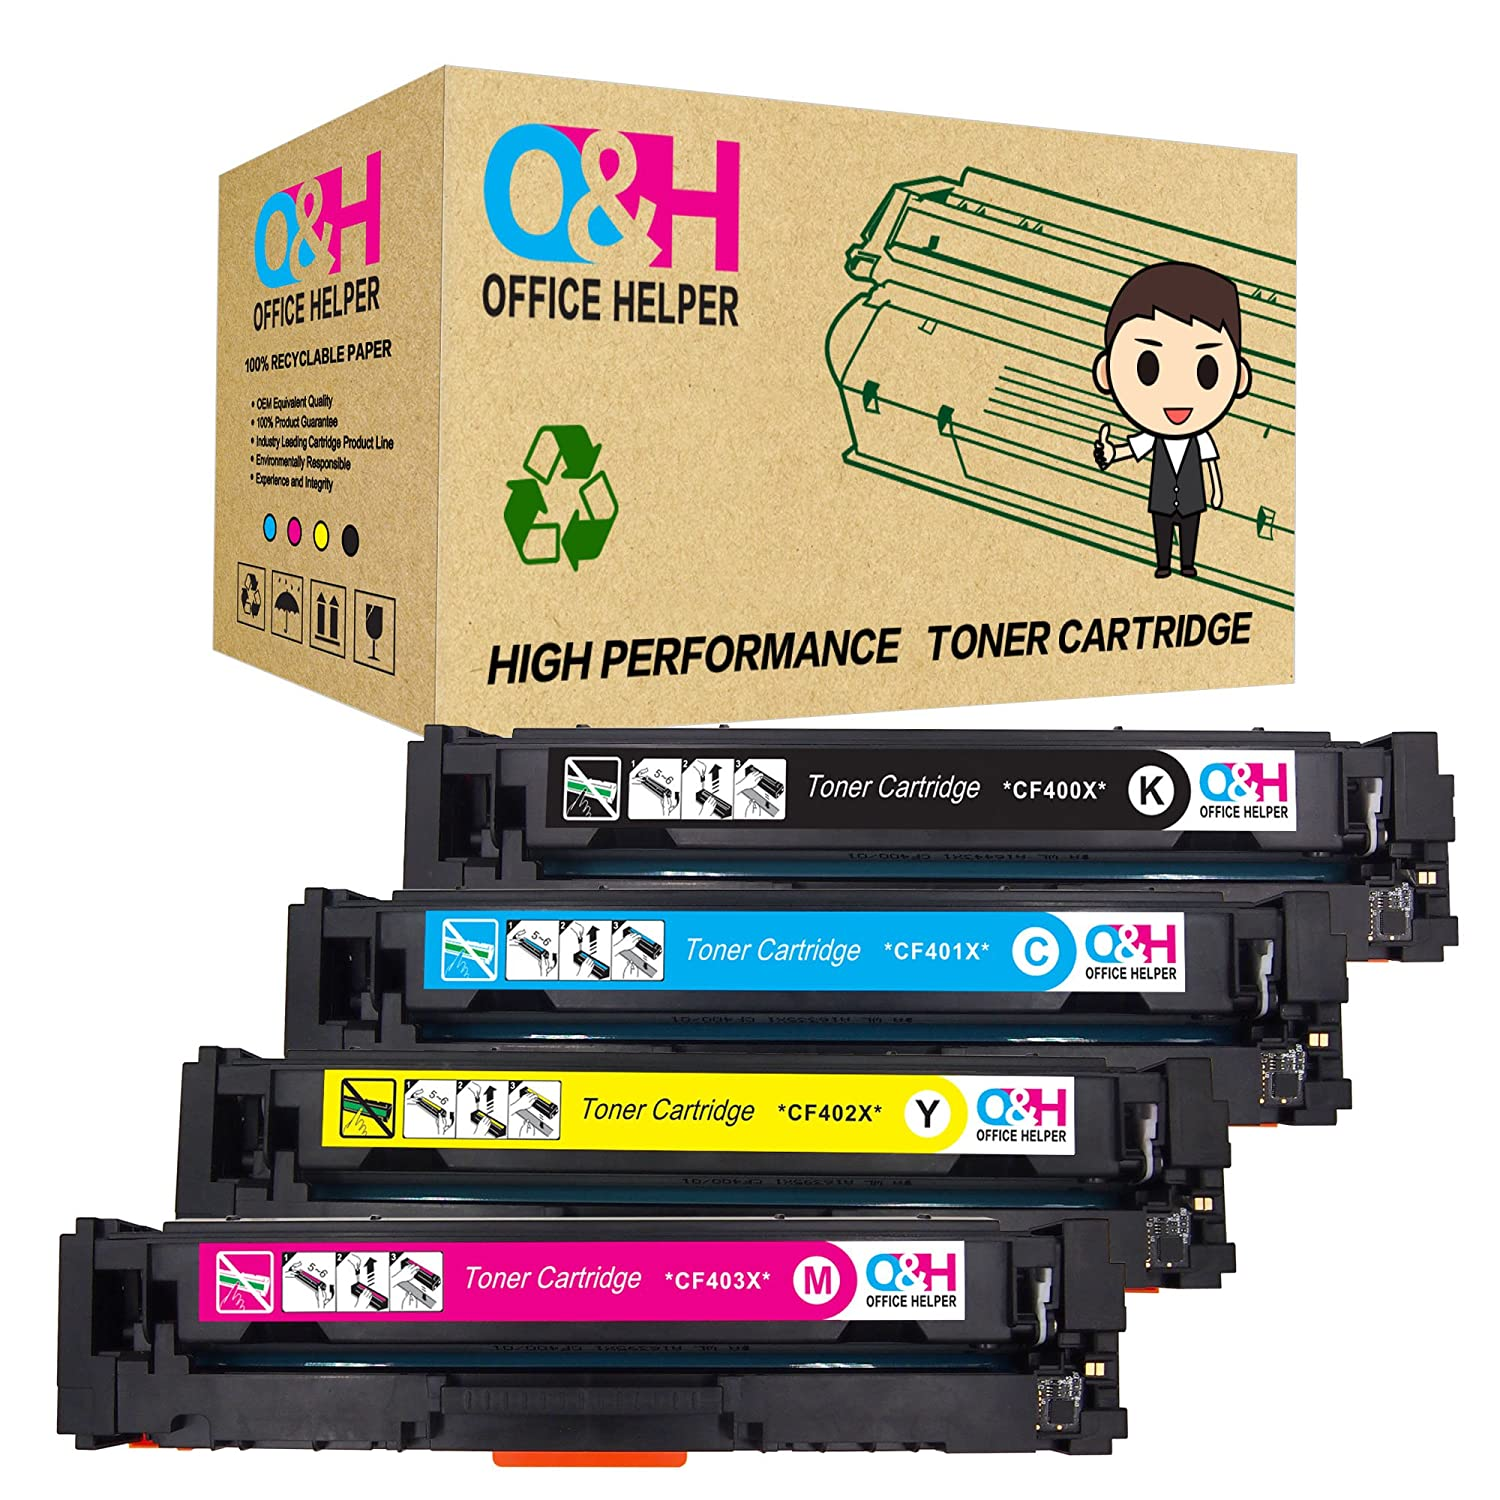 1-24x CF283A Toner Cartridge For HP 83A LaserJet Pro MFP M125a M125nw M225dn Lot